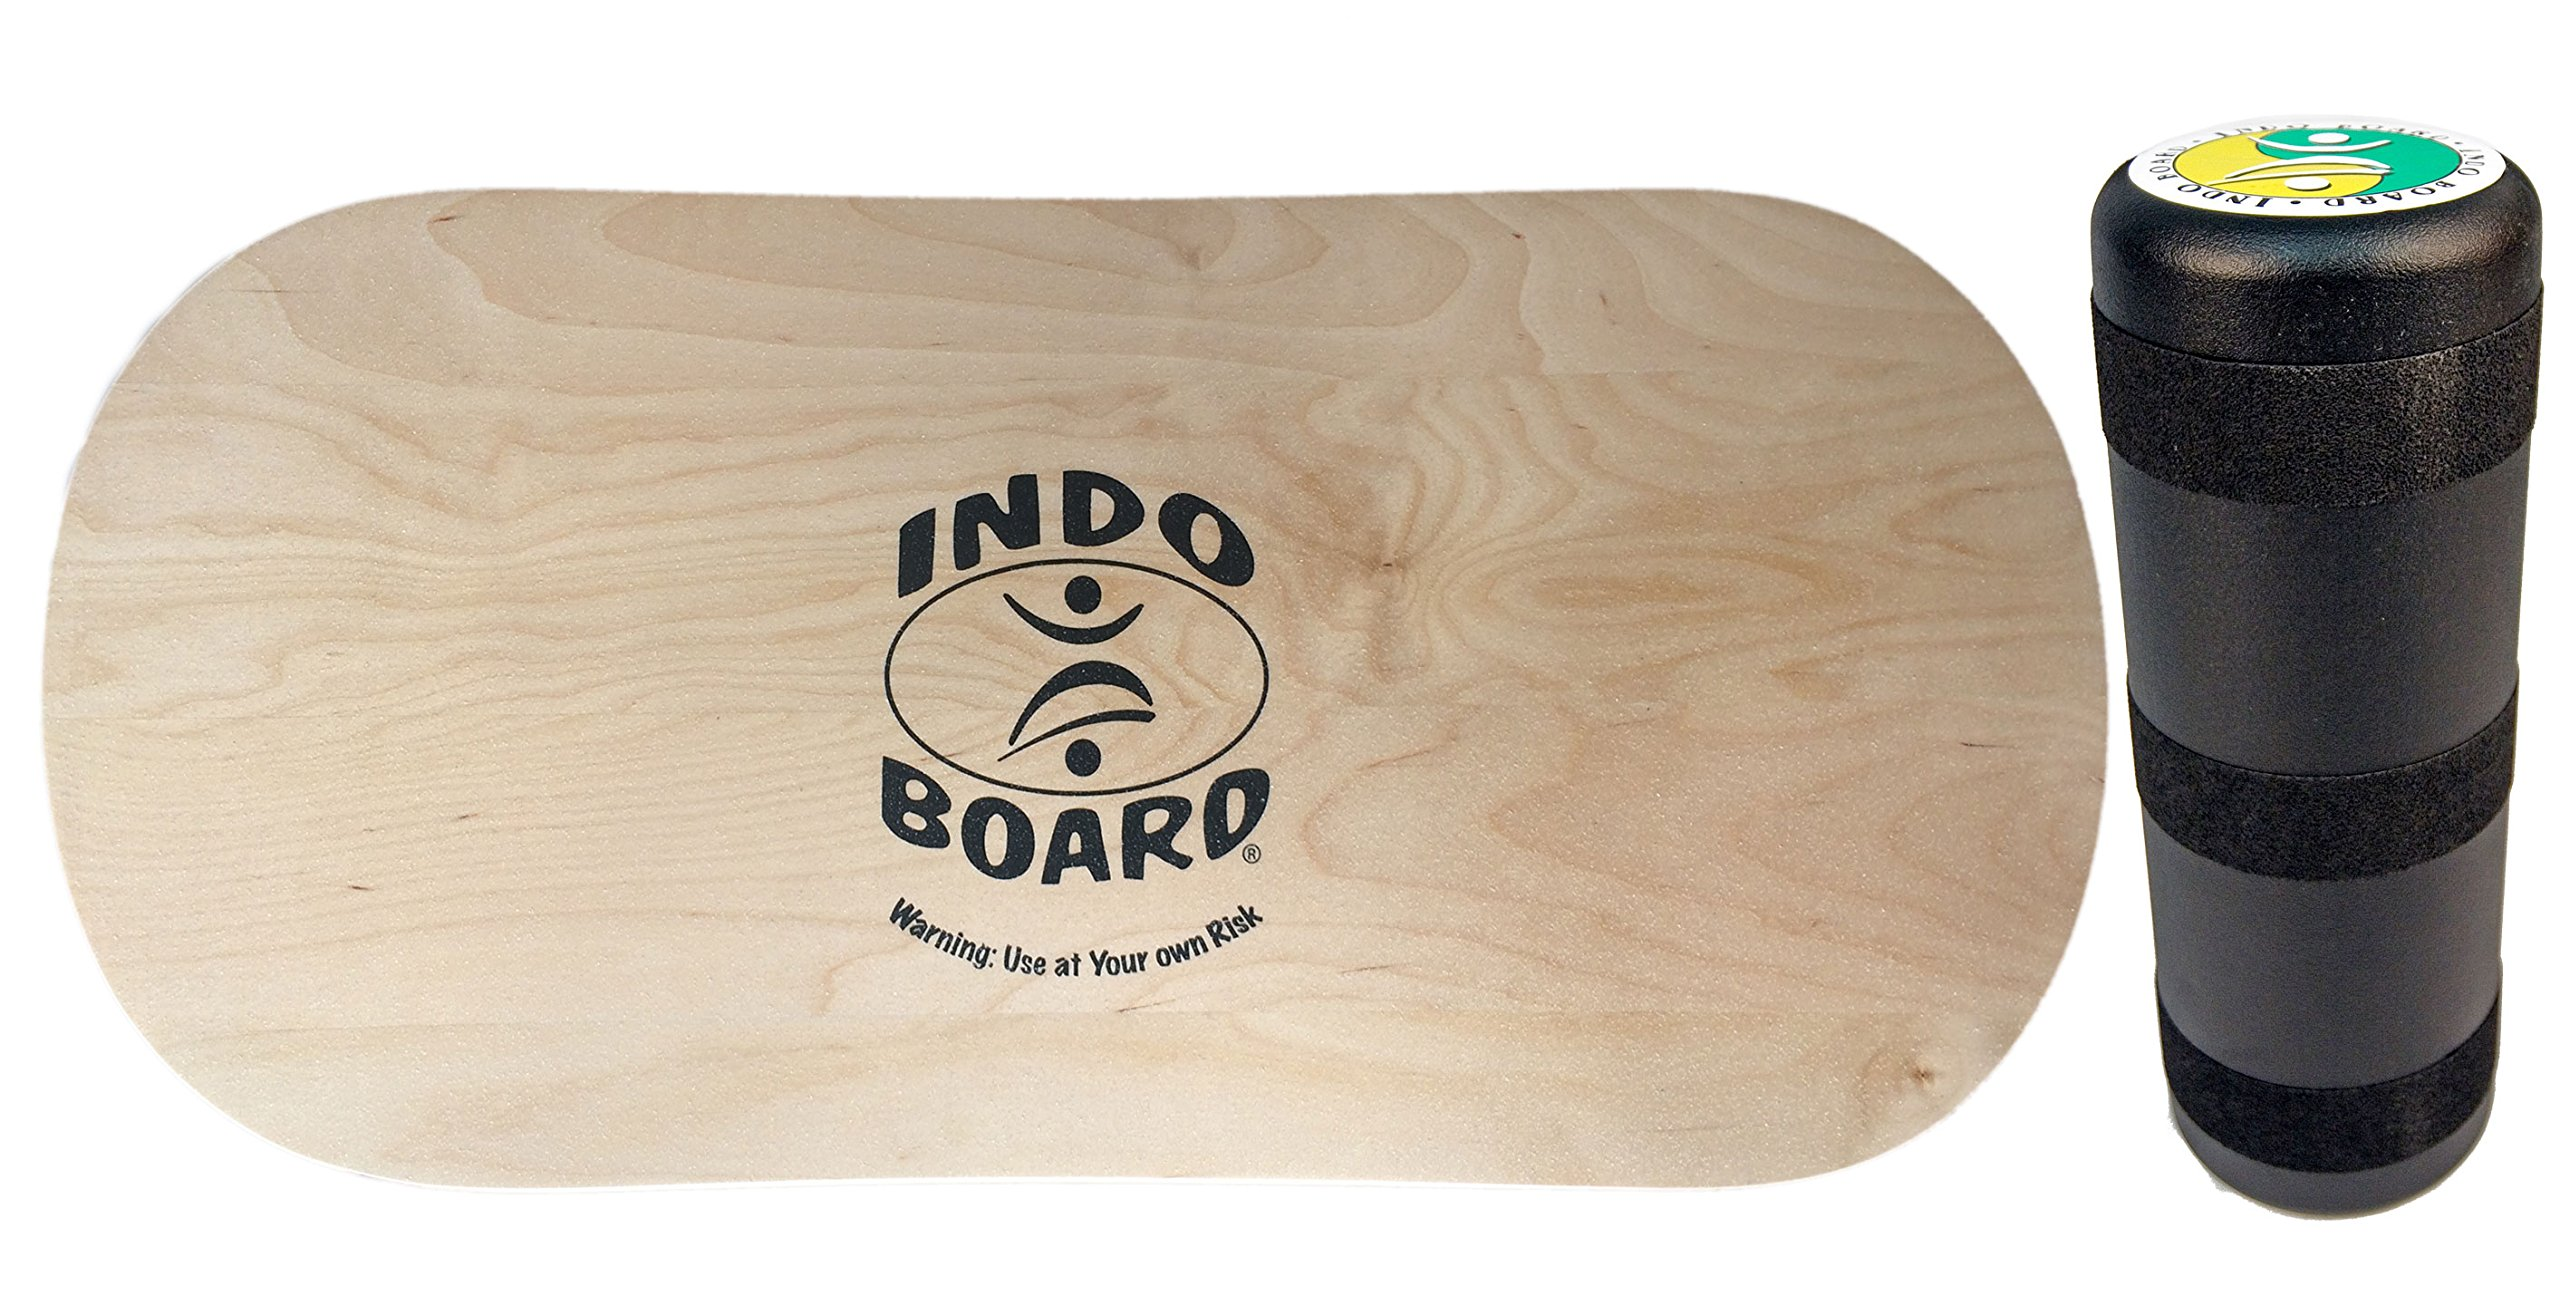 INDO BOARD Rocker 33'' X 16'' with 6.5'' Roller - High Performance Balance Board for Advanced Tricks - Natural Wood by INDO BOARD (Image #7)